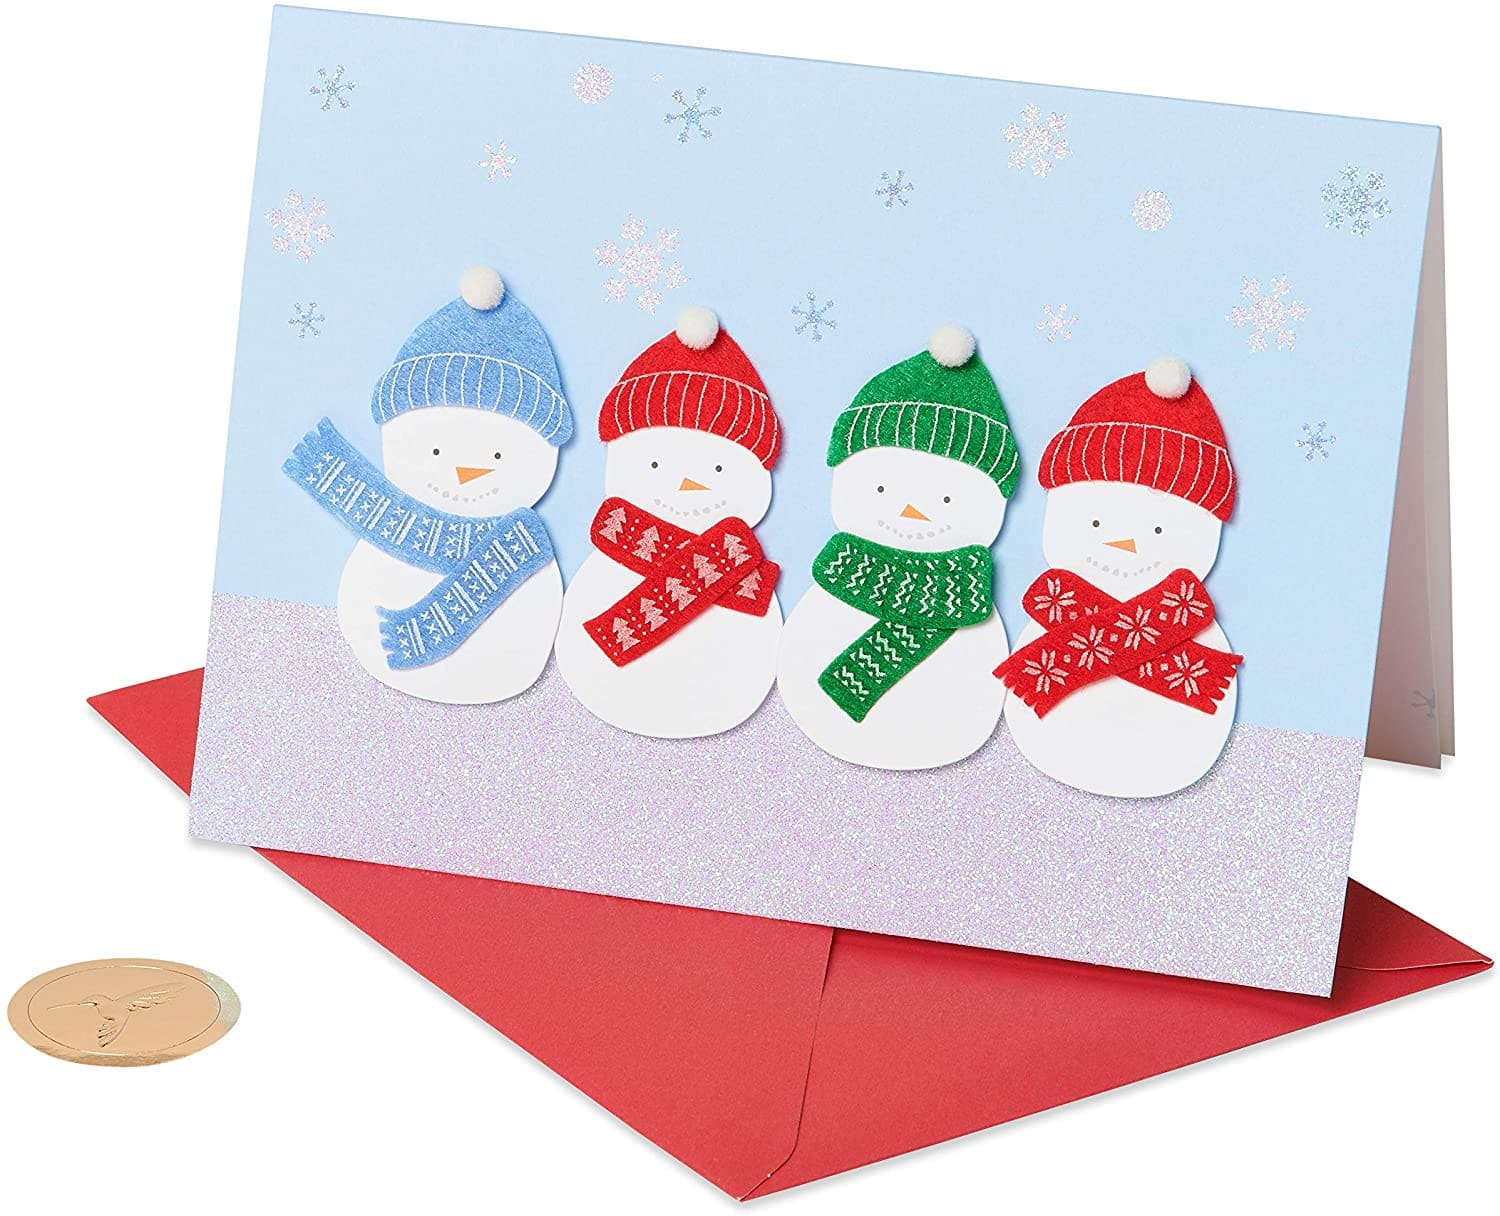 Papyrus Christmas Cards Boxed, Holiday Snowman Glitter (8-Count) $2.94 + free ship w/ prime